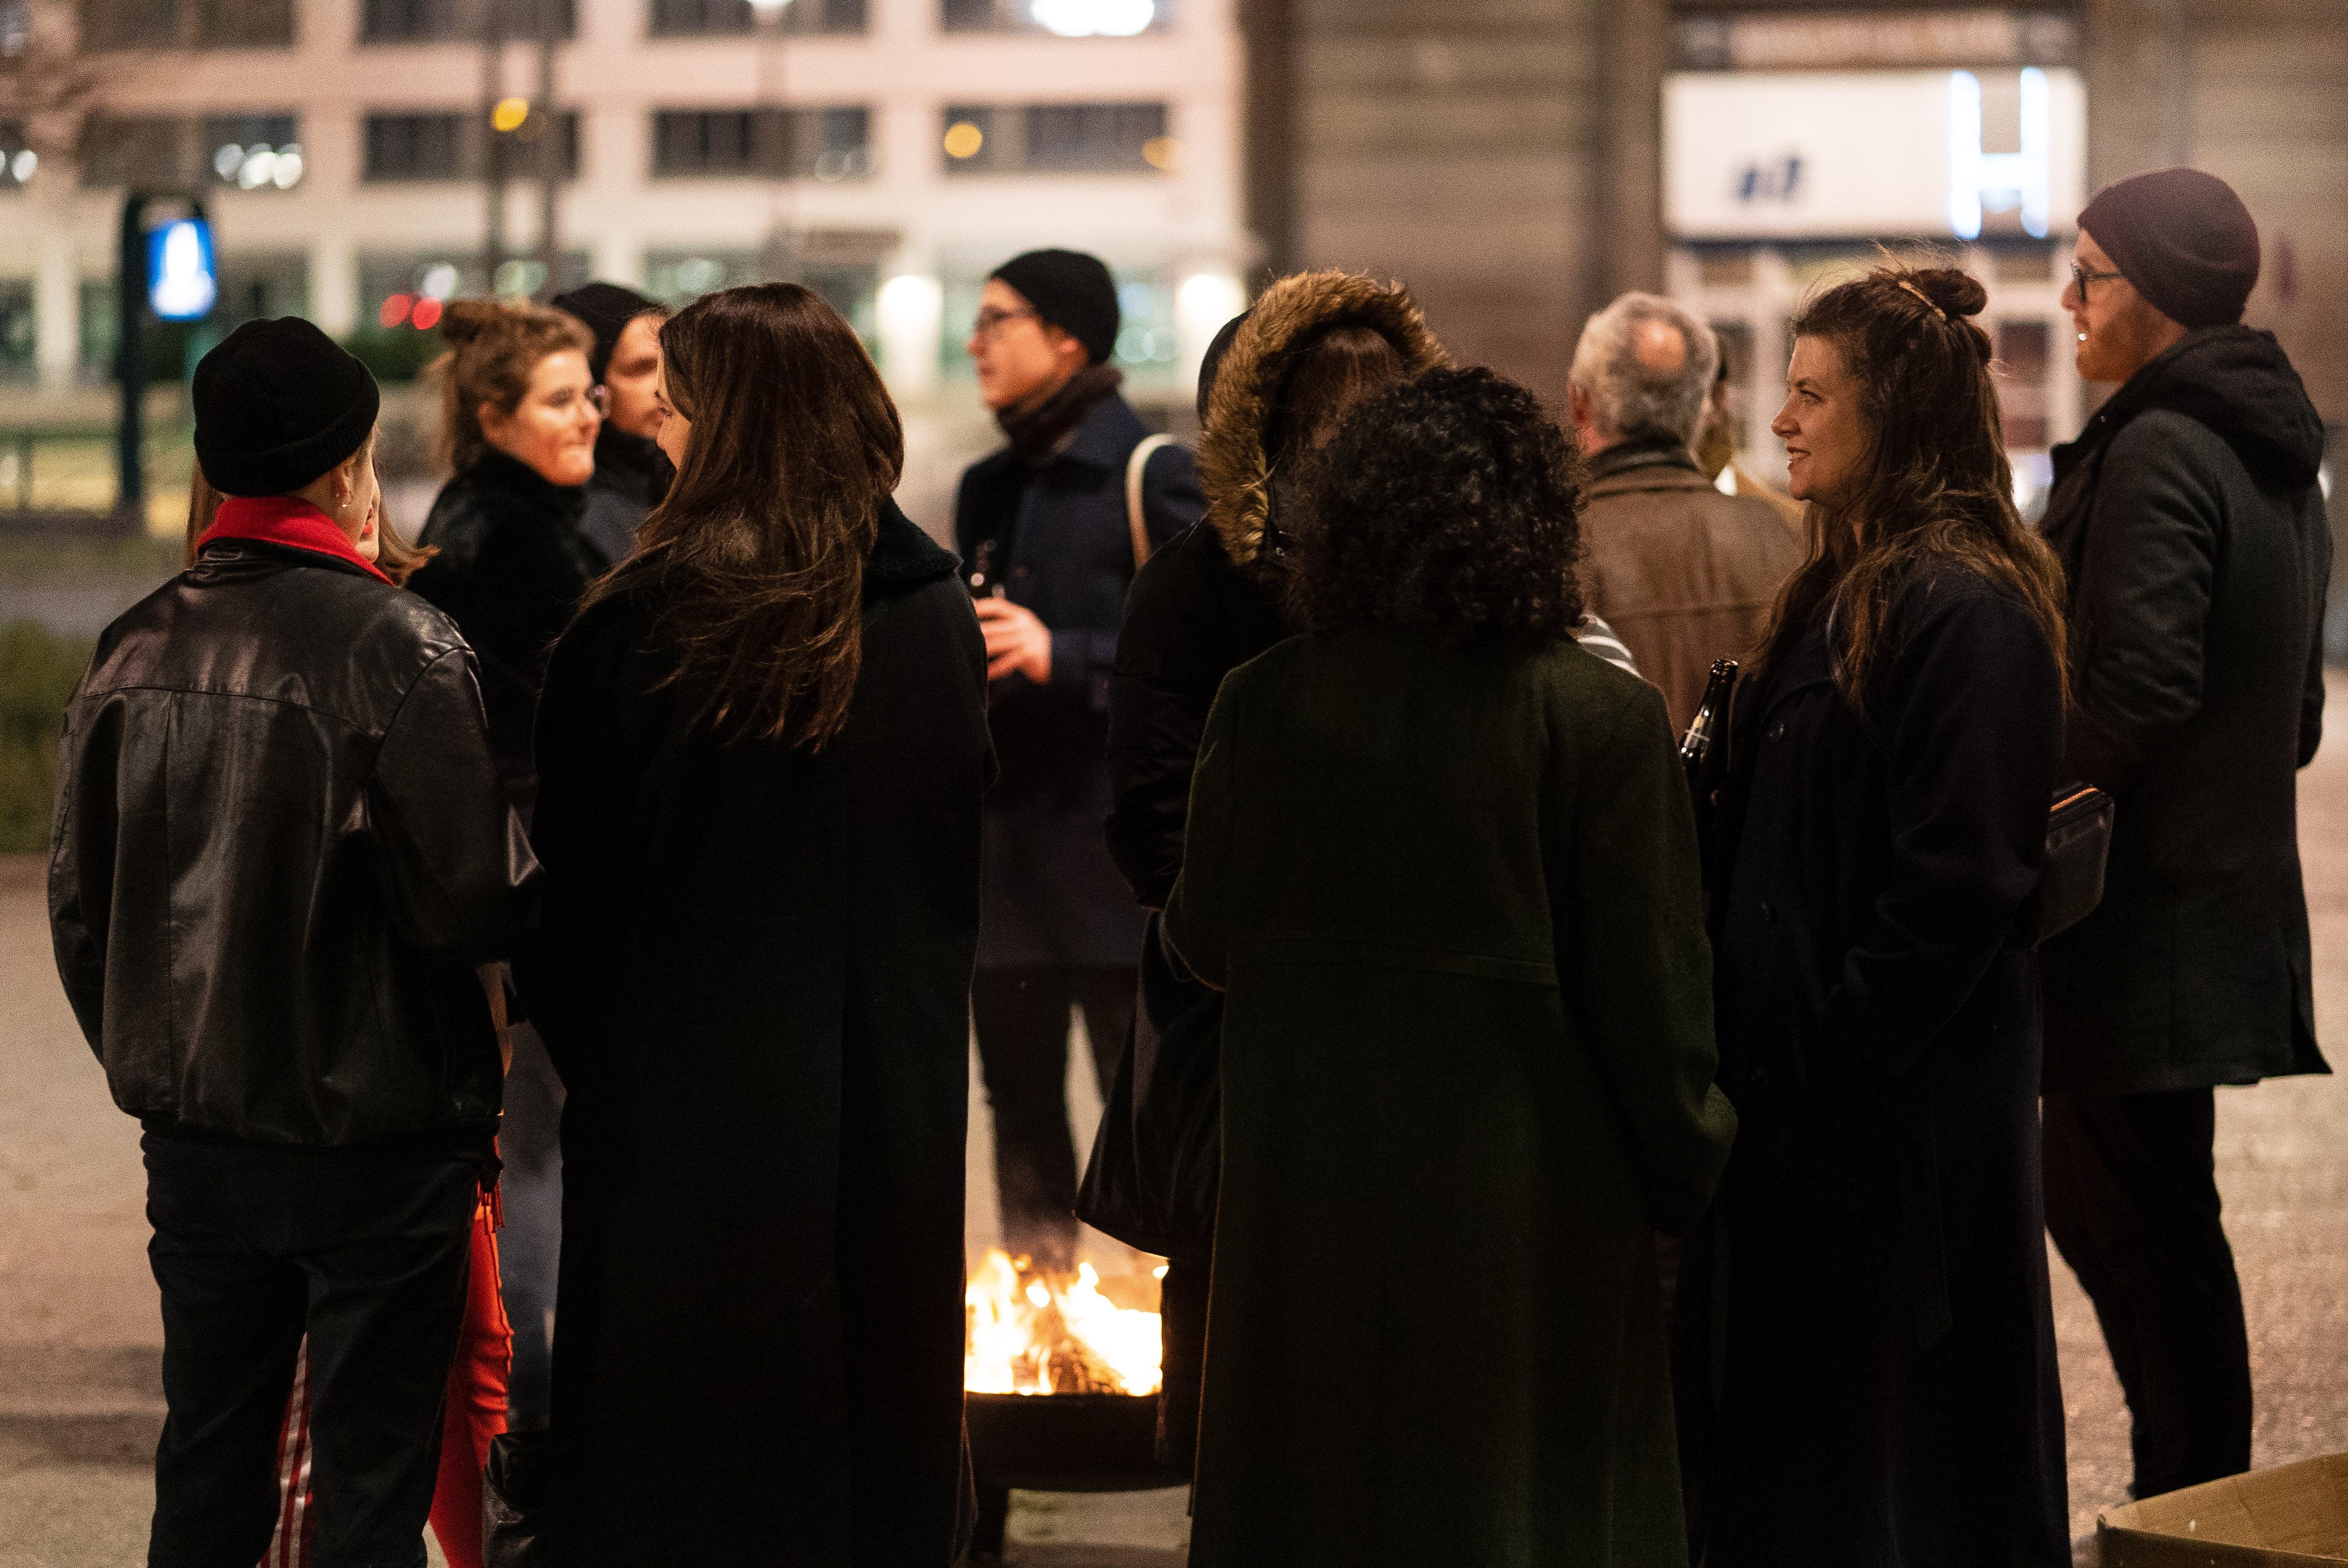 The photo shows several people standing around a fire in the evening in an urban area and talking.